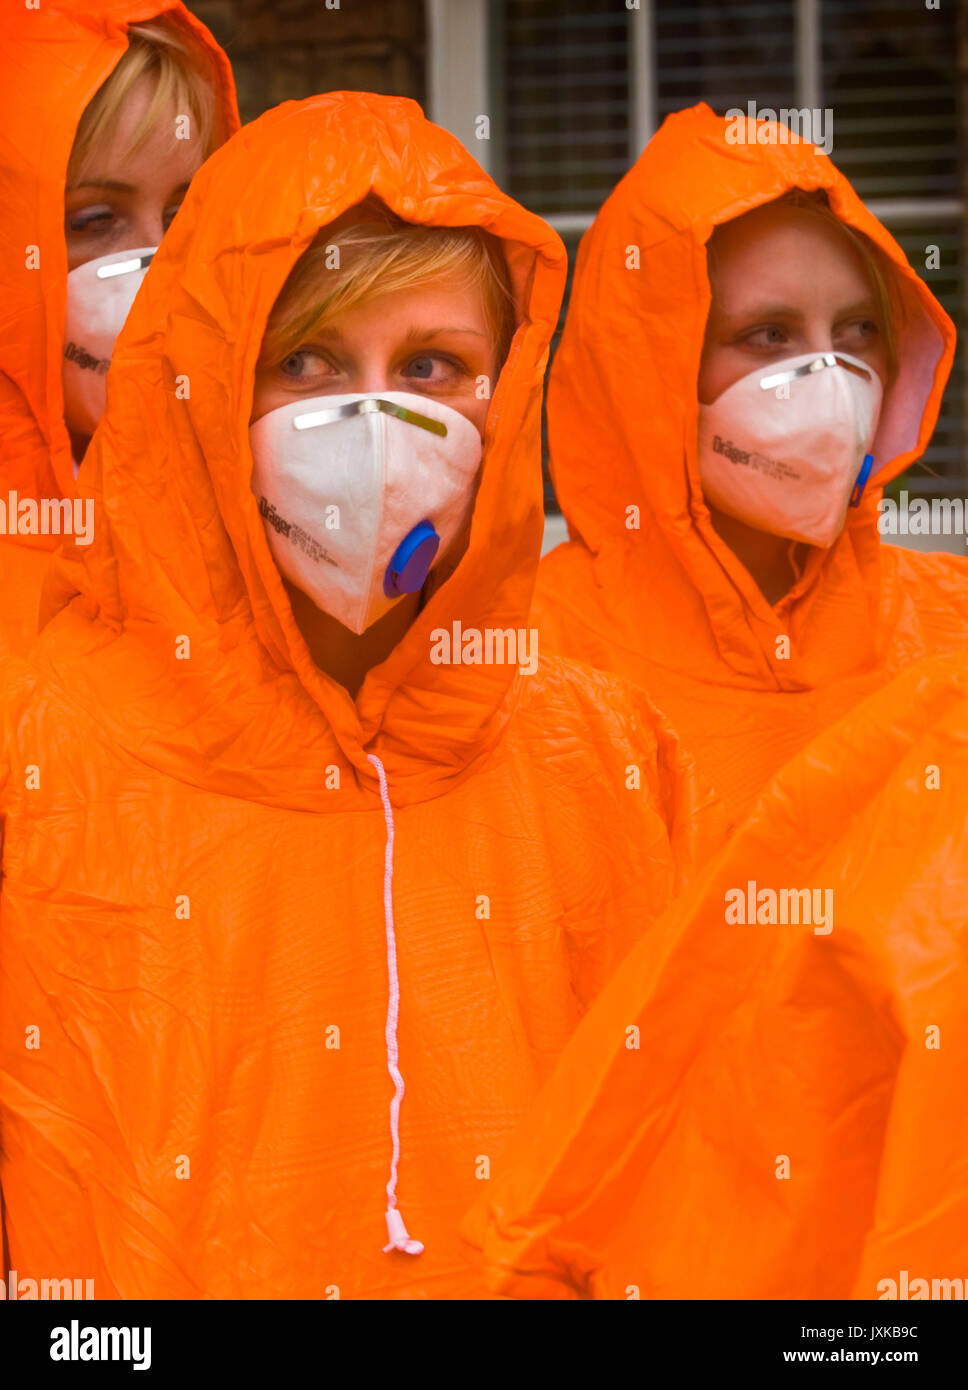 Medical students taking part in a simulated chemical contamination emergency wear brightly coloured coveralls and leave their own clothing in the desi - Stock Image